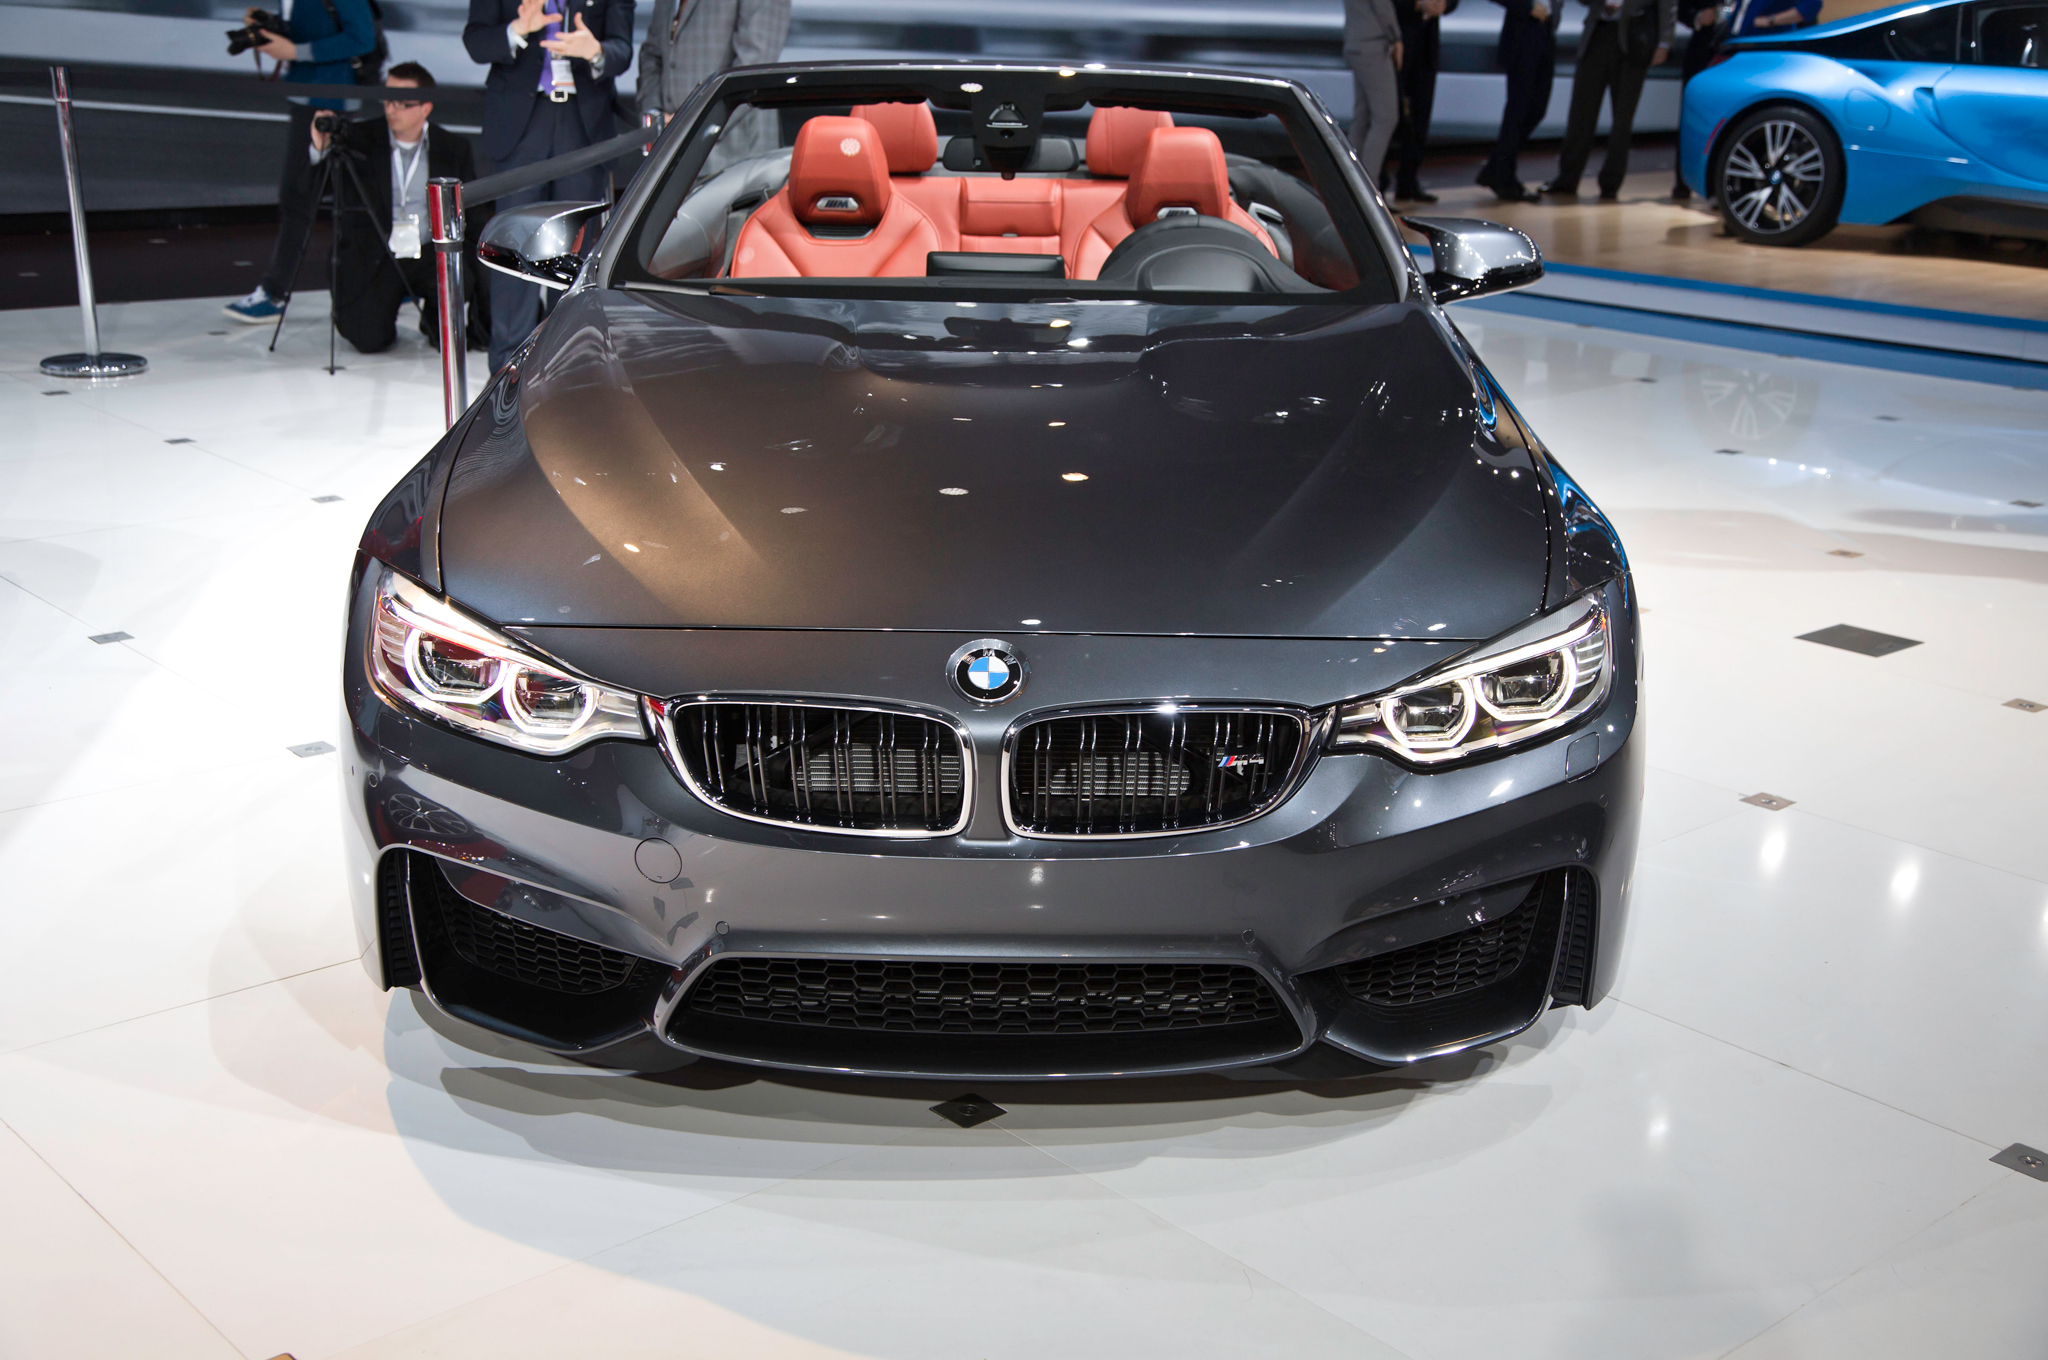 2015 Bmw M4 Convertible Front Design (Photo 10 of 50)